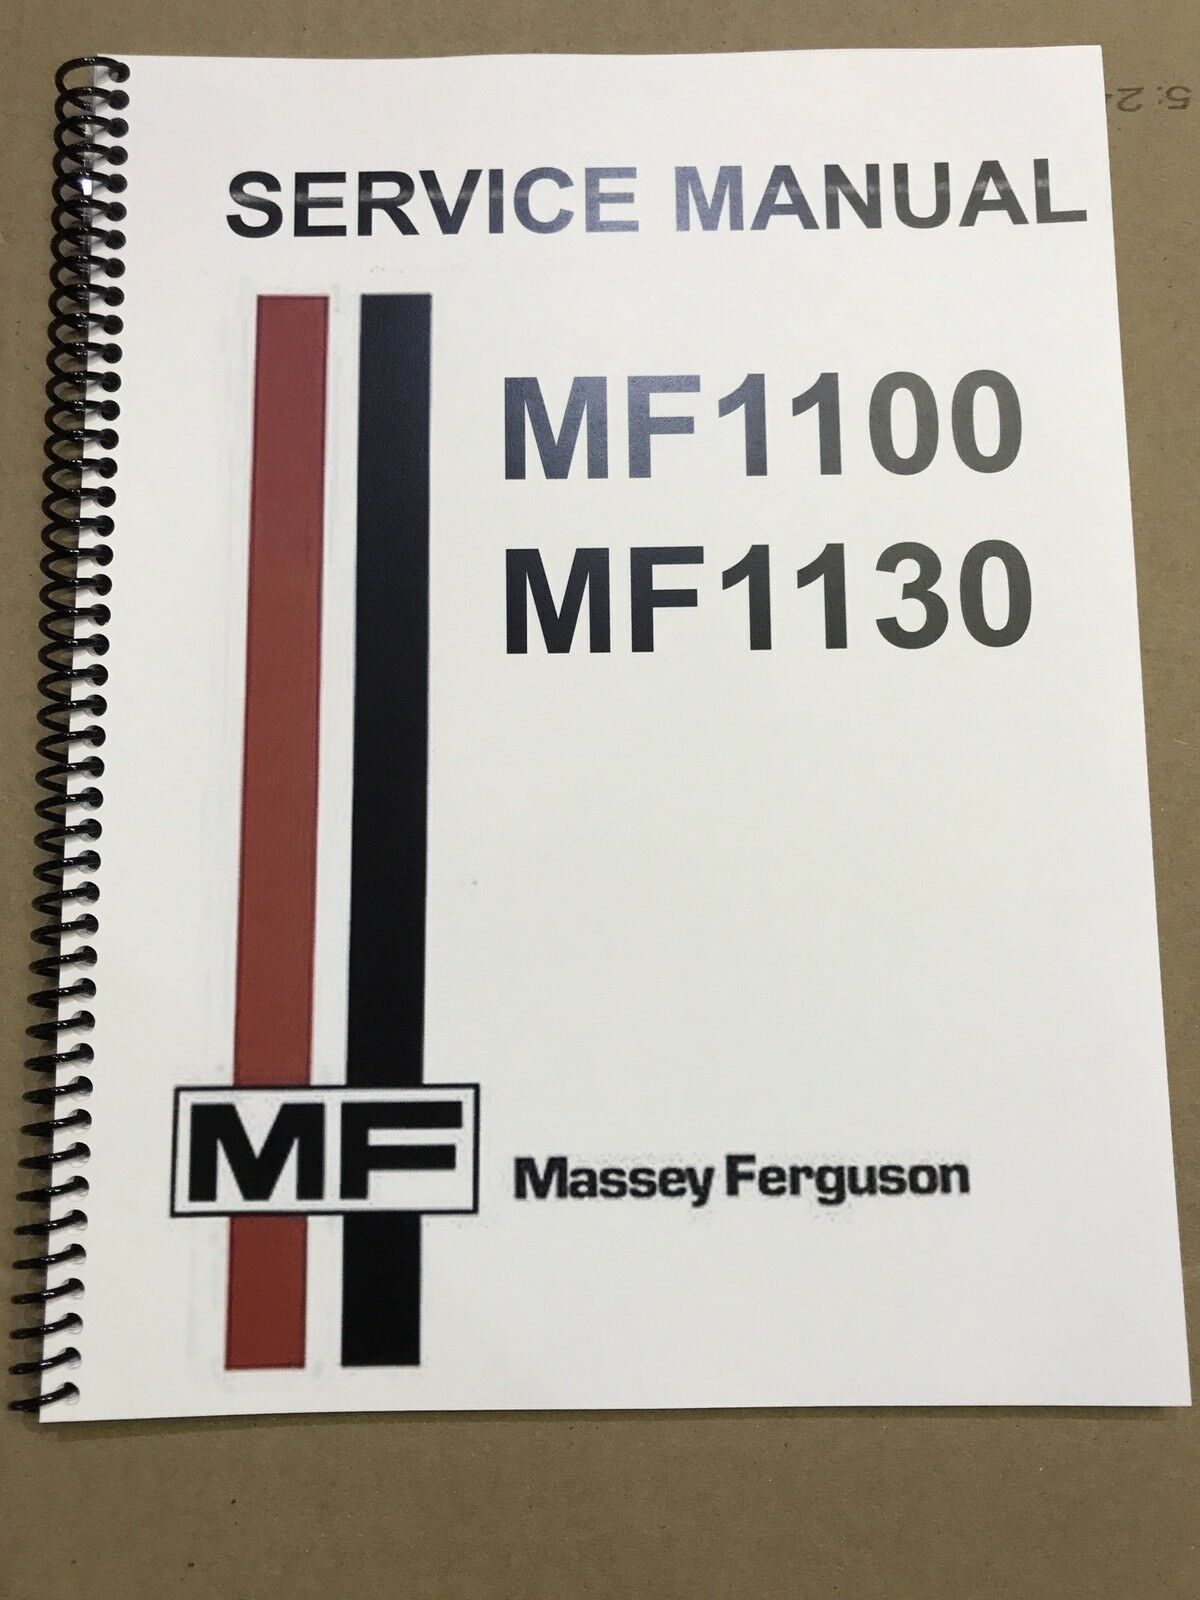 1100 Massey Ferguson Tractor Technical Service Shop Repair Manual MF1100 1  of 4Only 2 available ...